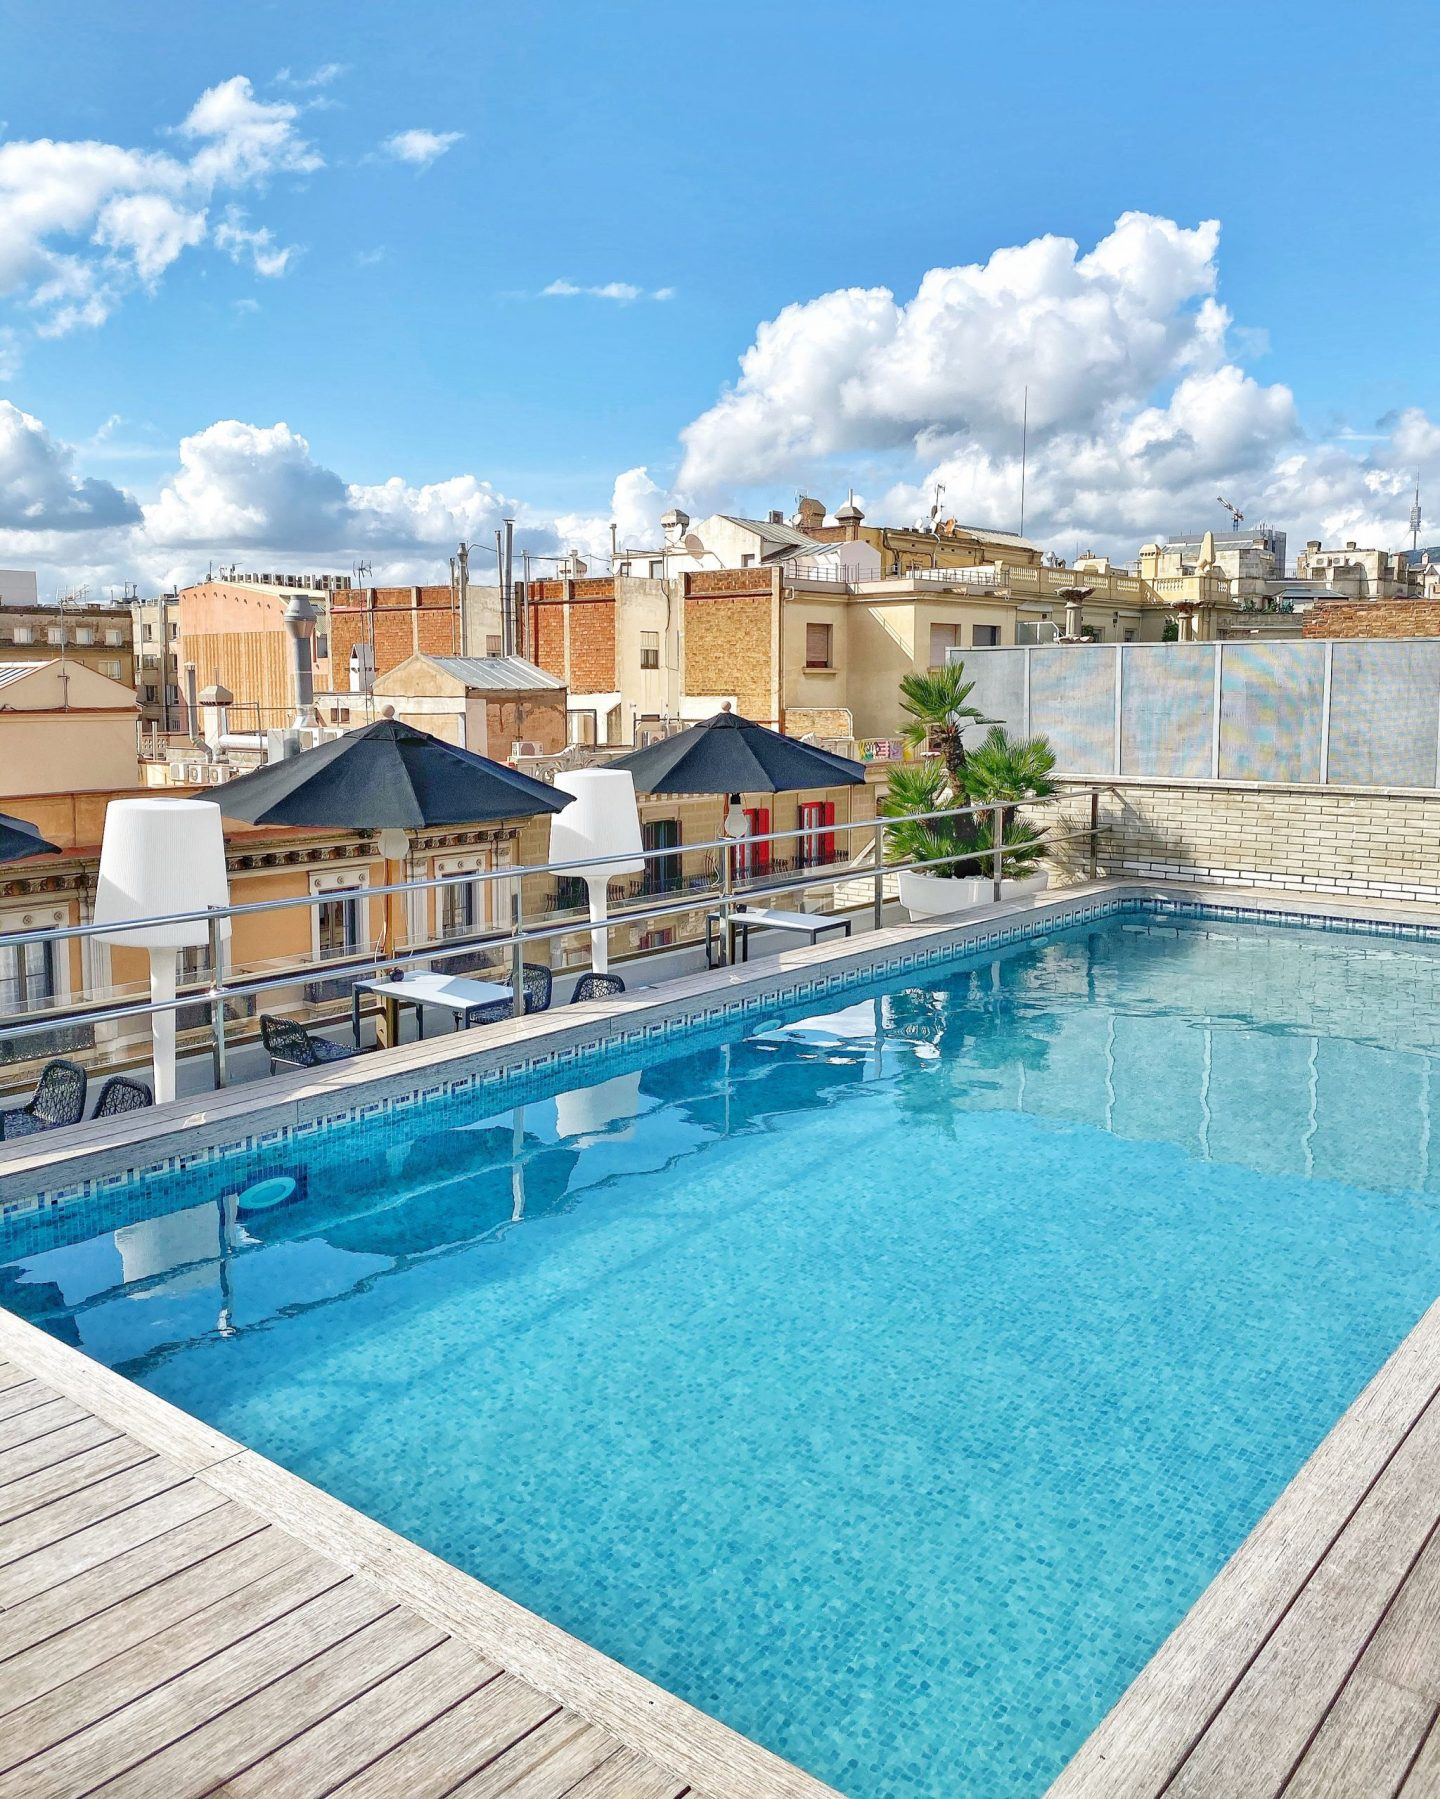 Hotel Claris rooftop pool